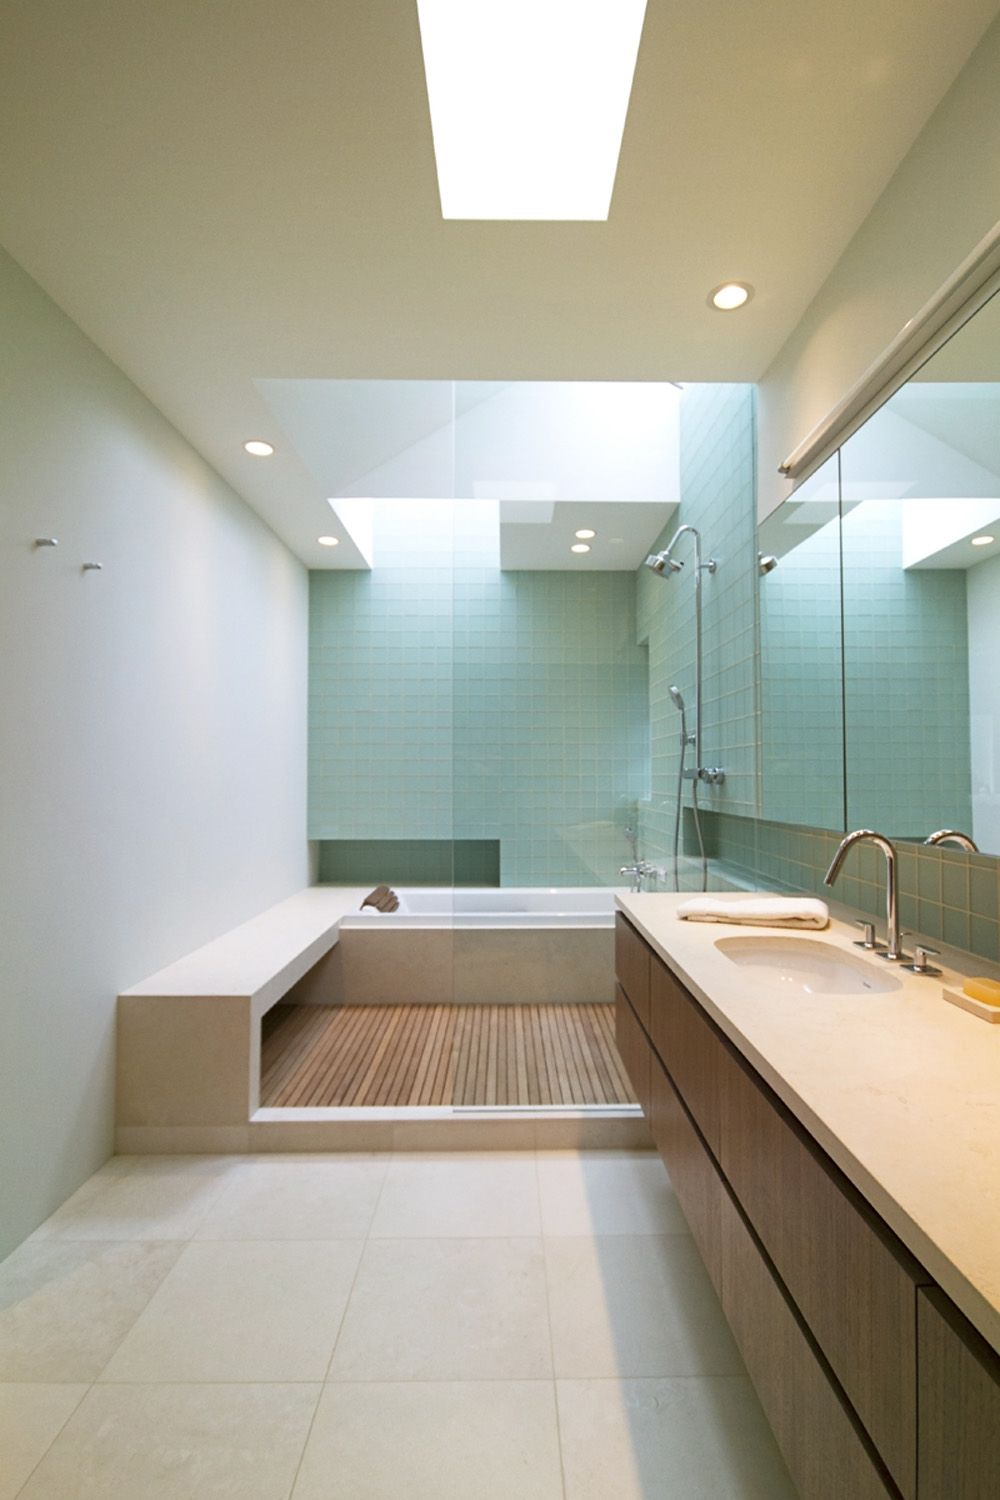 bathroom remodel in Medina, WA by SHED Architecture & Design